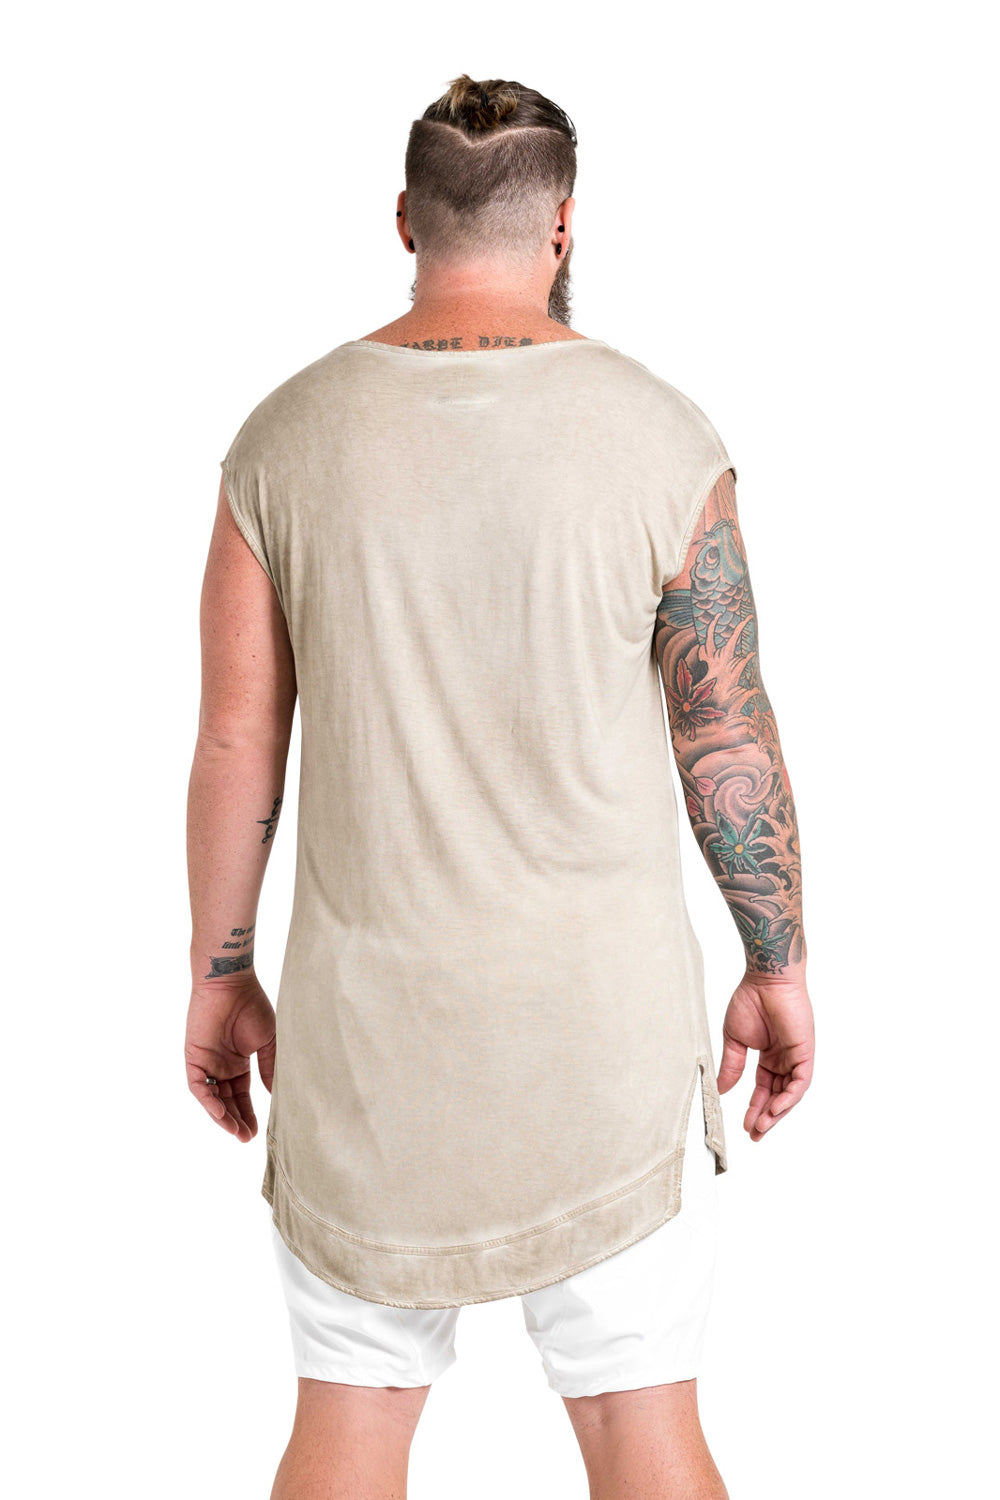 OLIVE OIL MUSCLE SHIRT